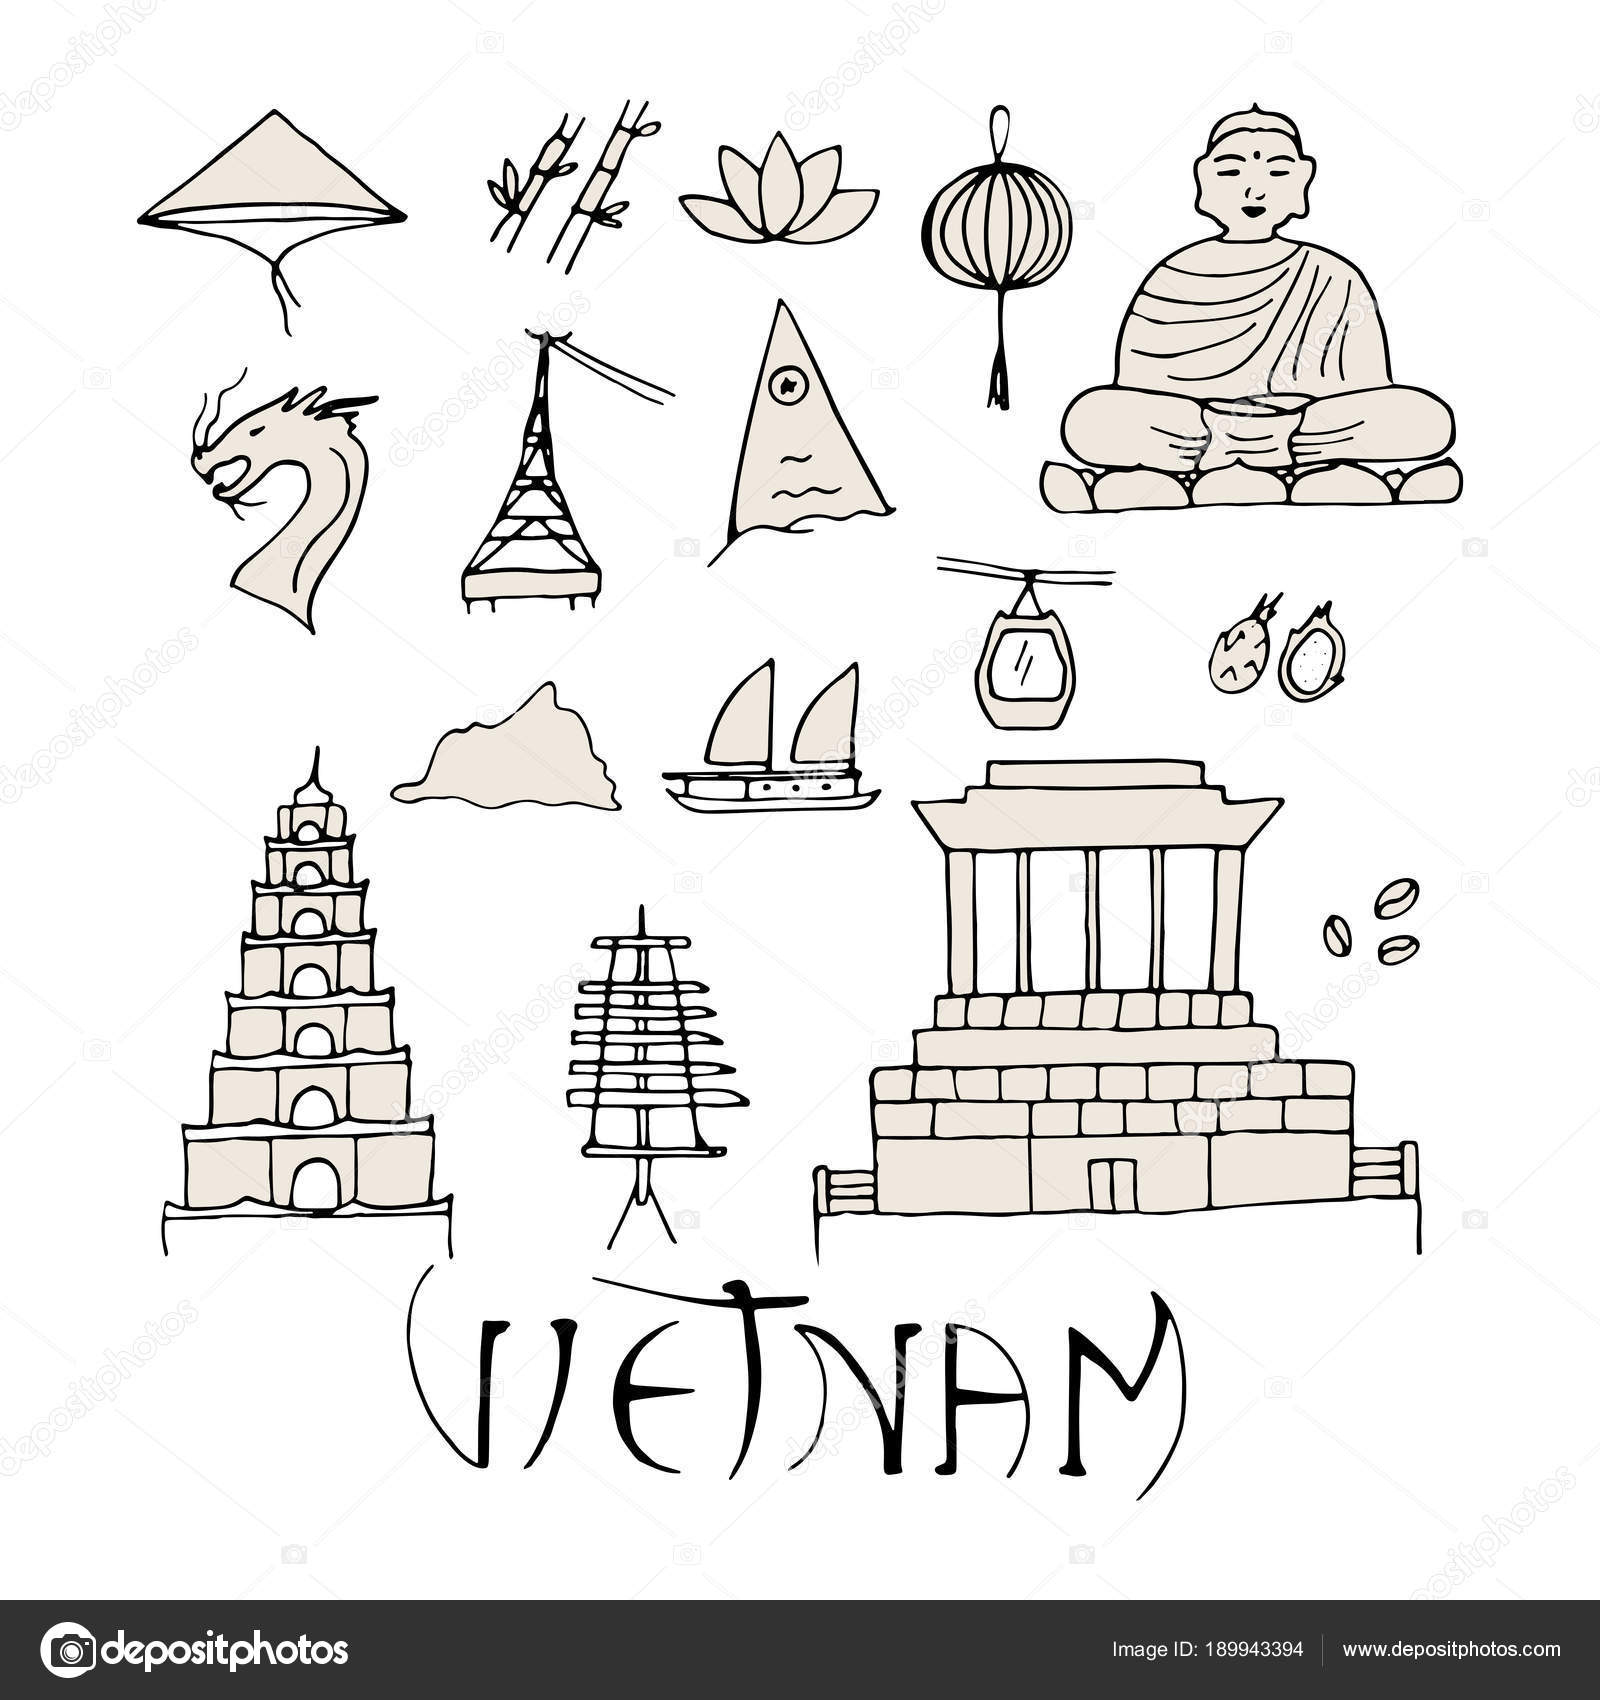 Symbols Of Vietnam Gallery Meaning Of This Symbol